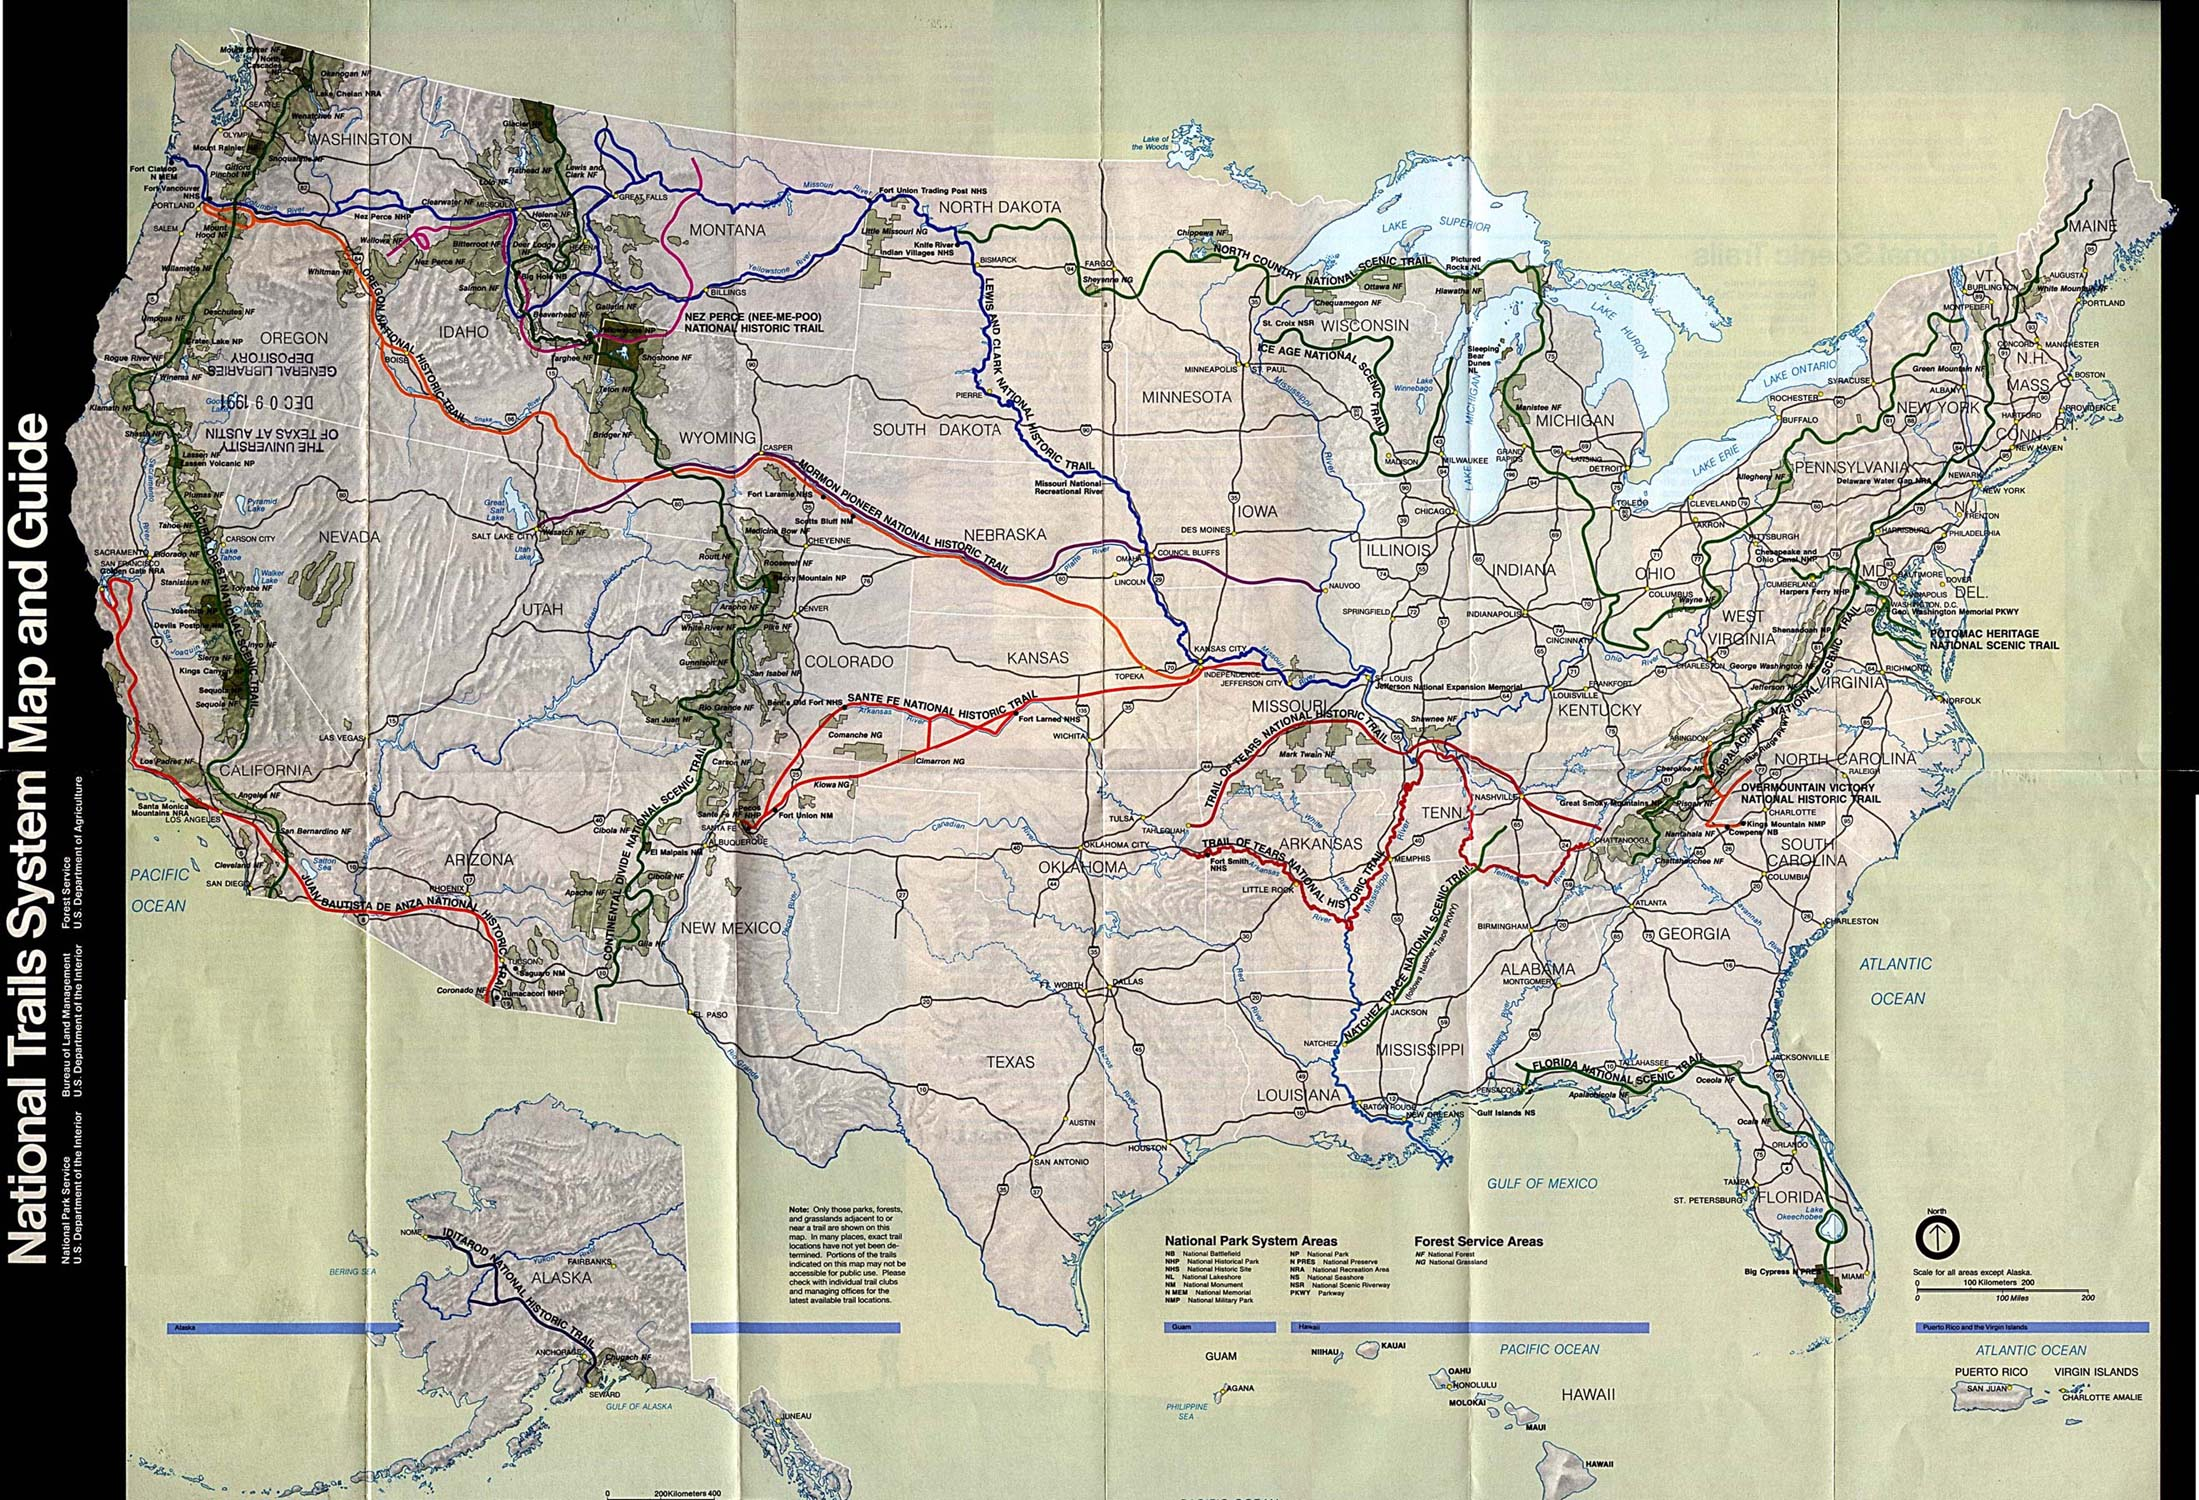 United States National Parks And Monuments Maps PerryCastañeda - Map of national parks in united states